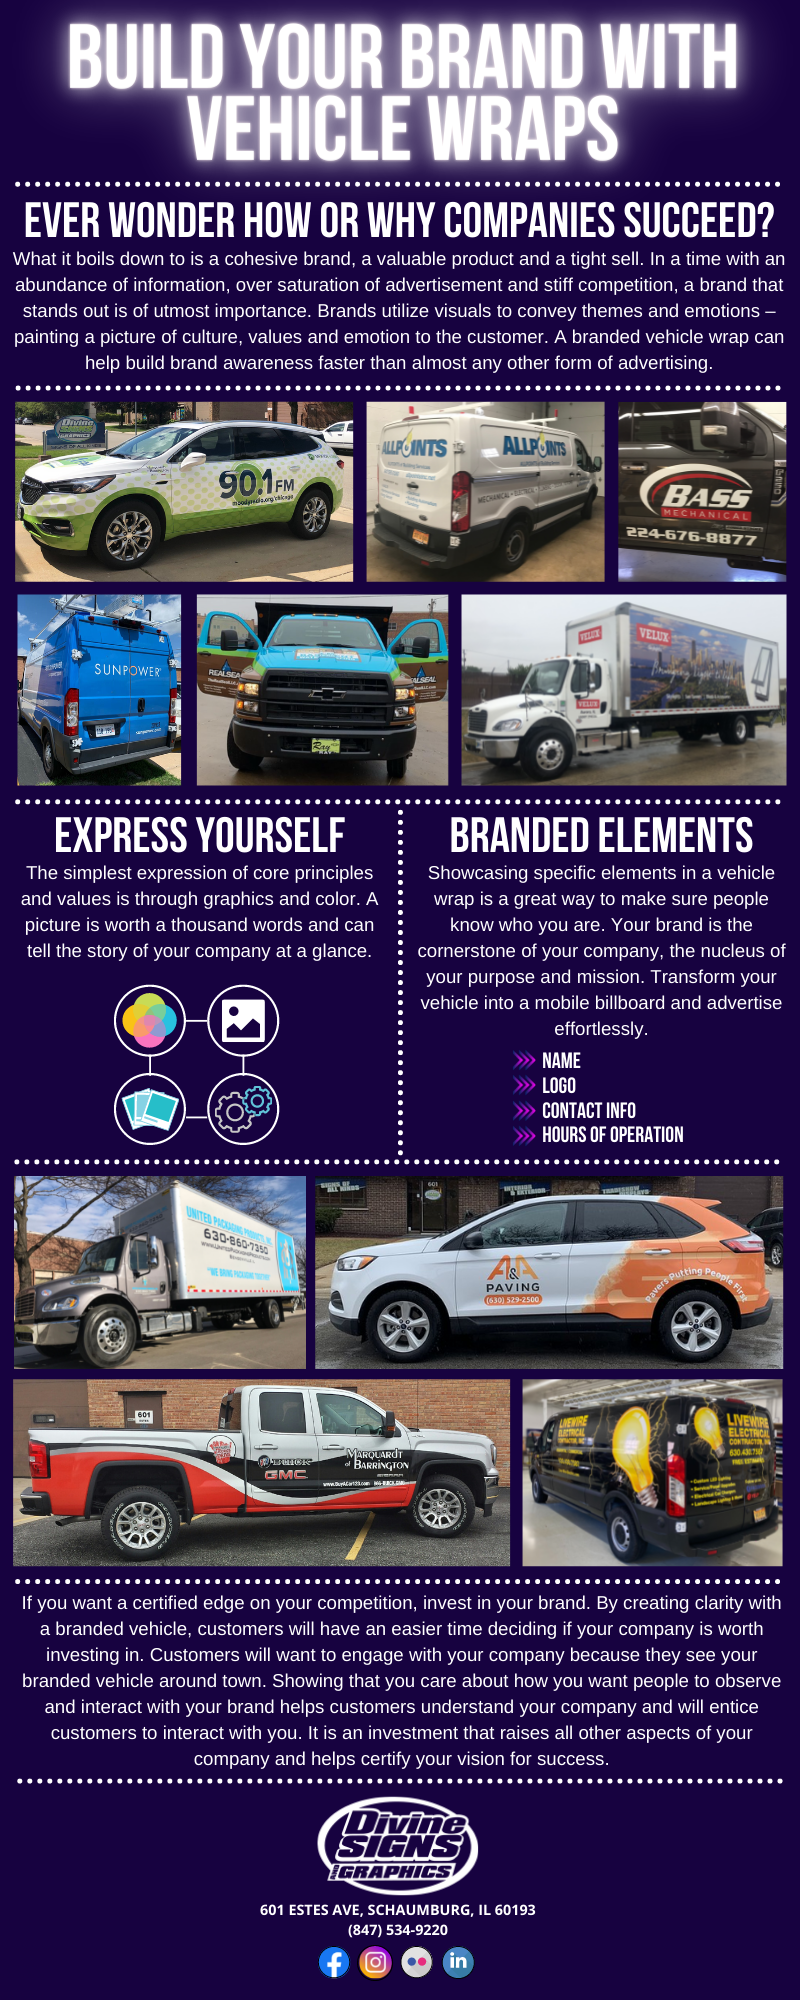 Build Your Brand With Vehicle Wraps